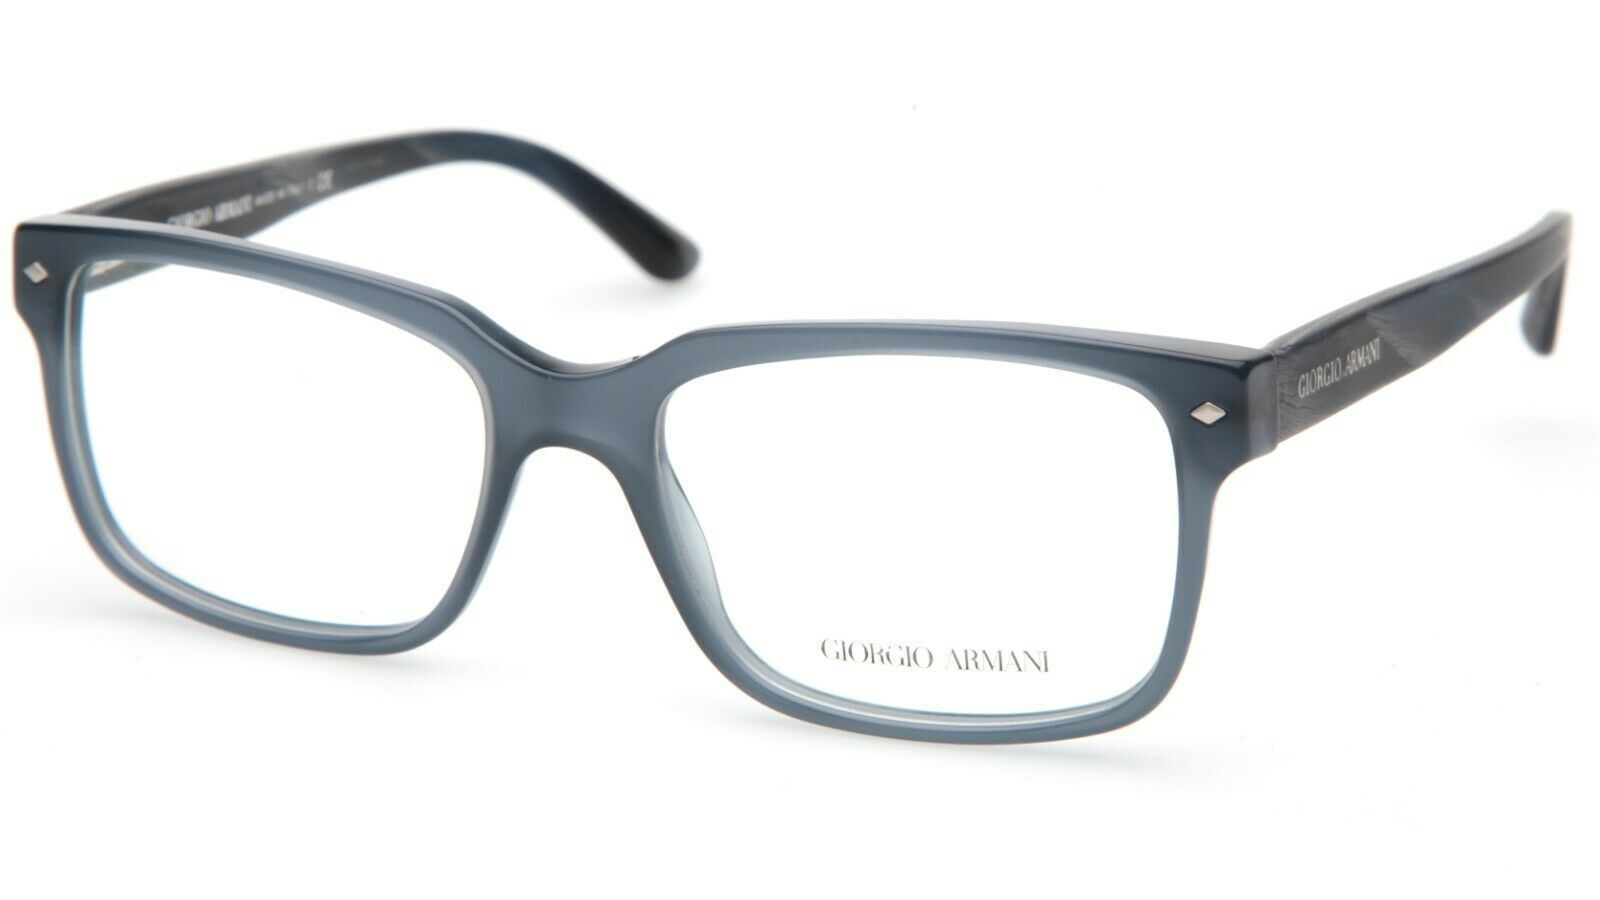 Primary image for New GIORGIO ARMANI AR7066 5360 EYEGLASSES FRAME 55-18-145mm B40mm Italy